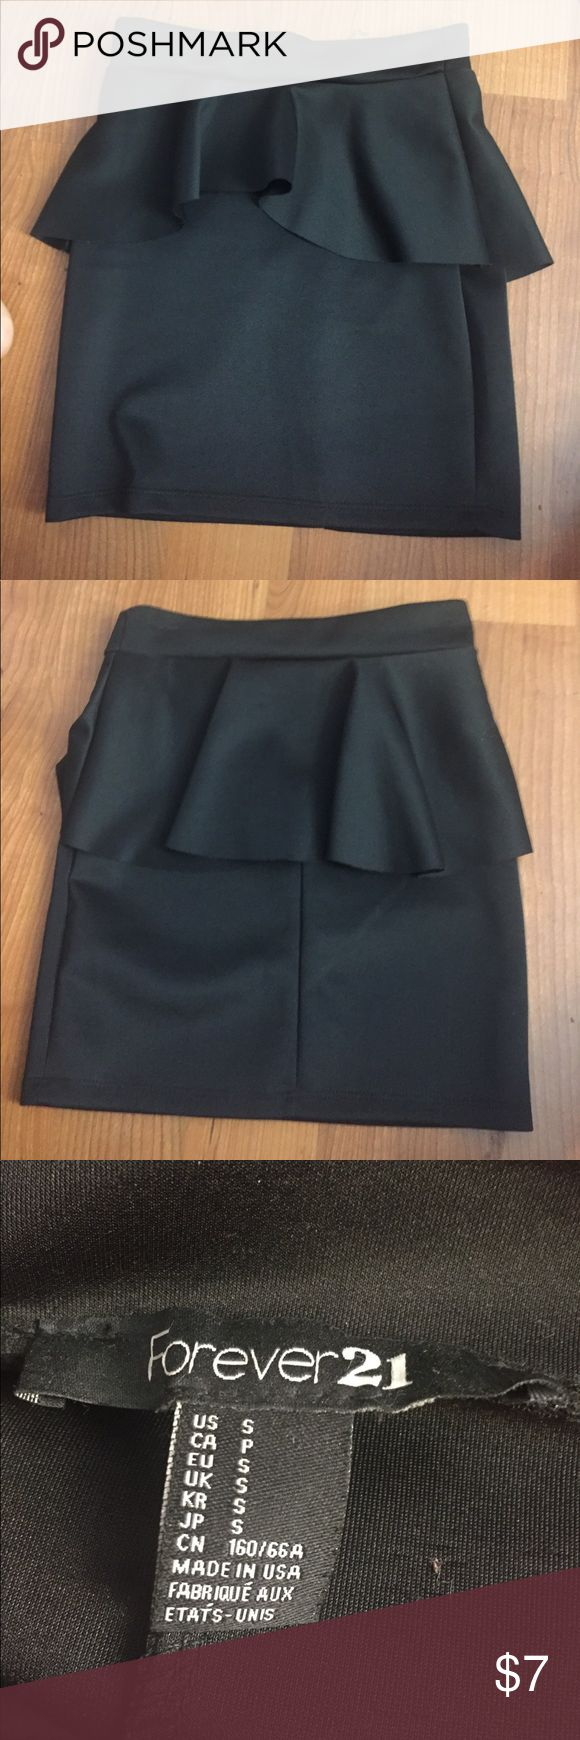 Bodycon peplum skirt NWOT F21 black peplum skirt. Pencil fit, very flattering! Forever 21 Skirts Pencil